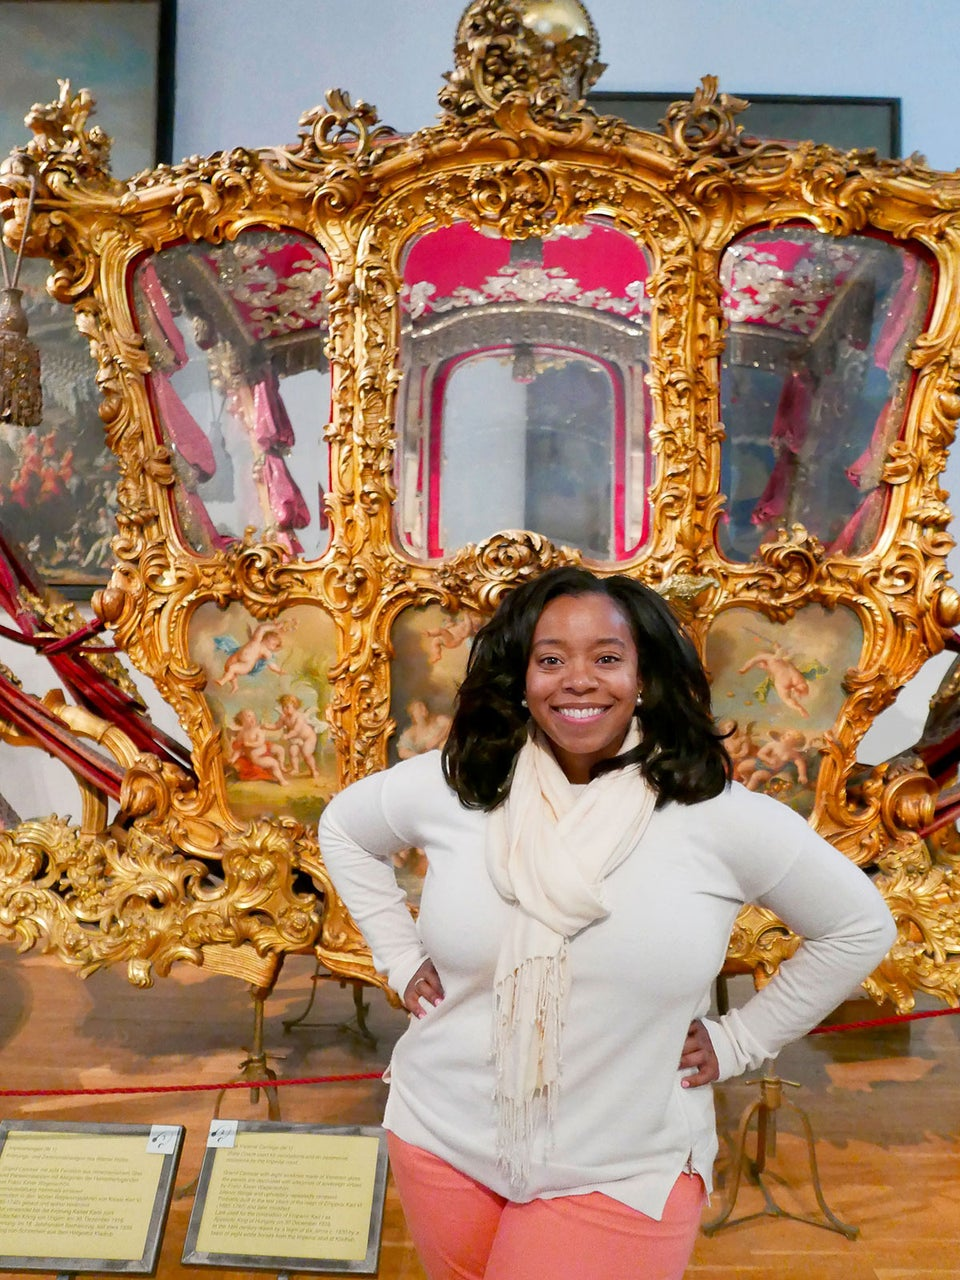 3 Single Black Women Living Abroad Reveal What It's Like to Date in the UAE, Europe and More